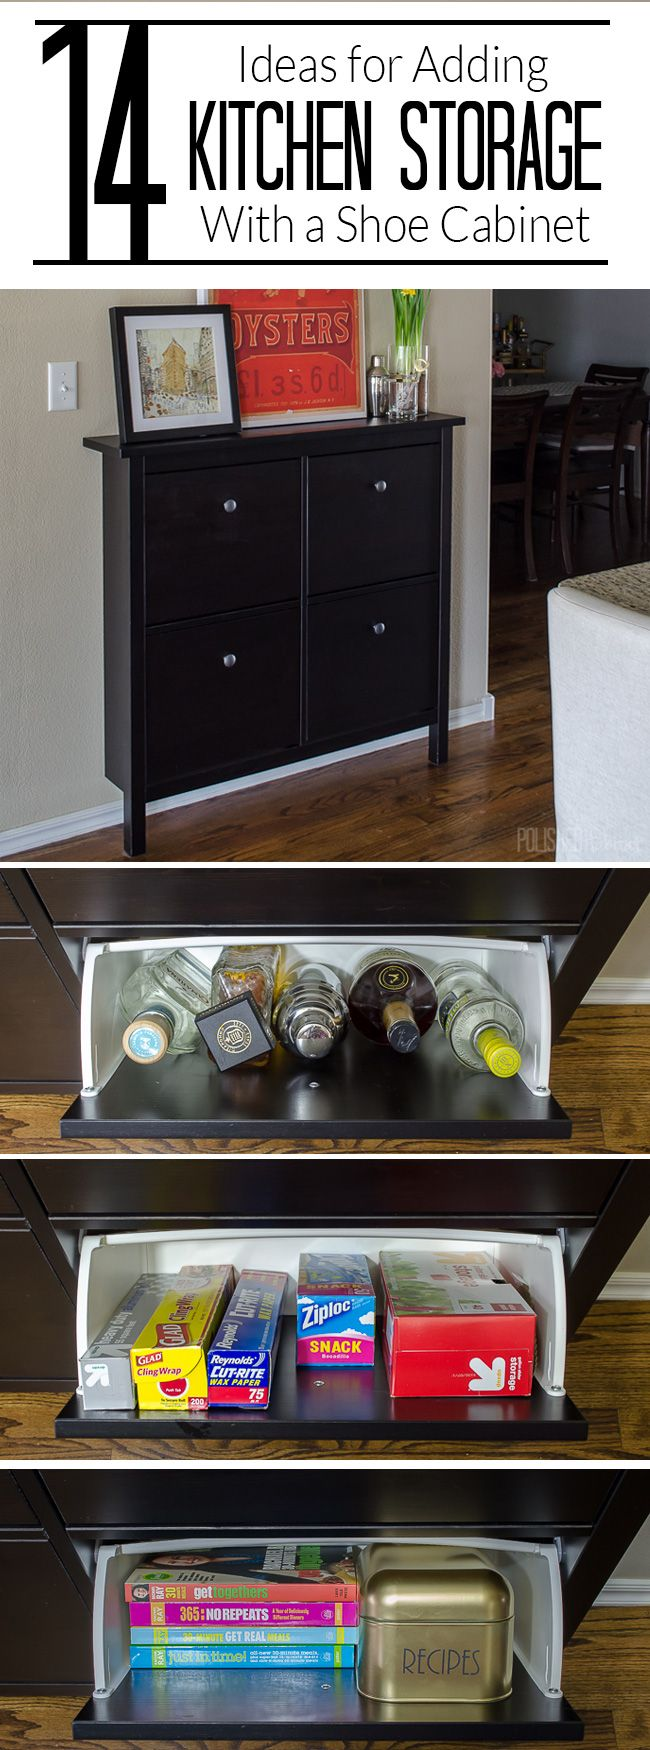 14 Ways To Use an IKEA Shoe Cabinet For Extra Kitchen Storage ...